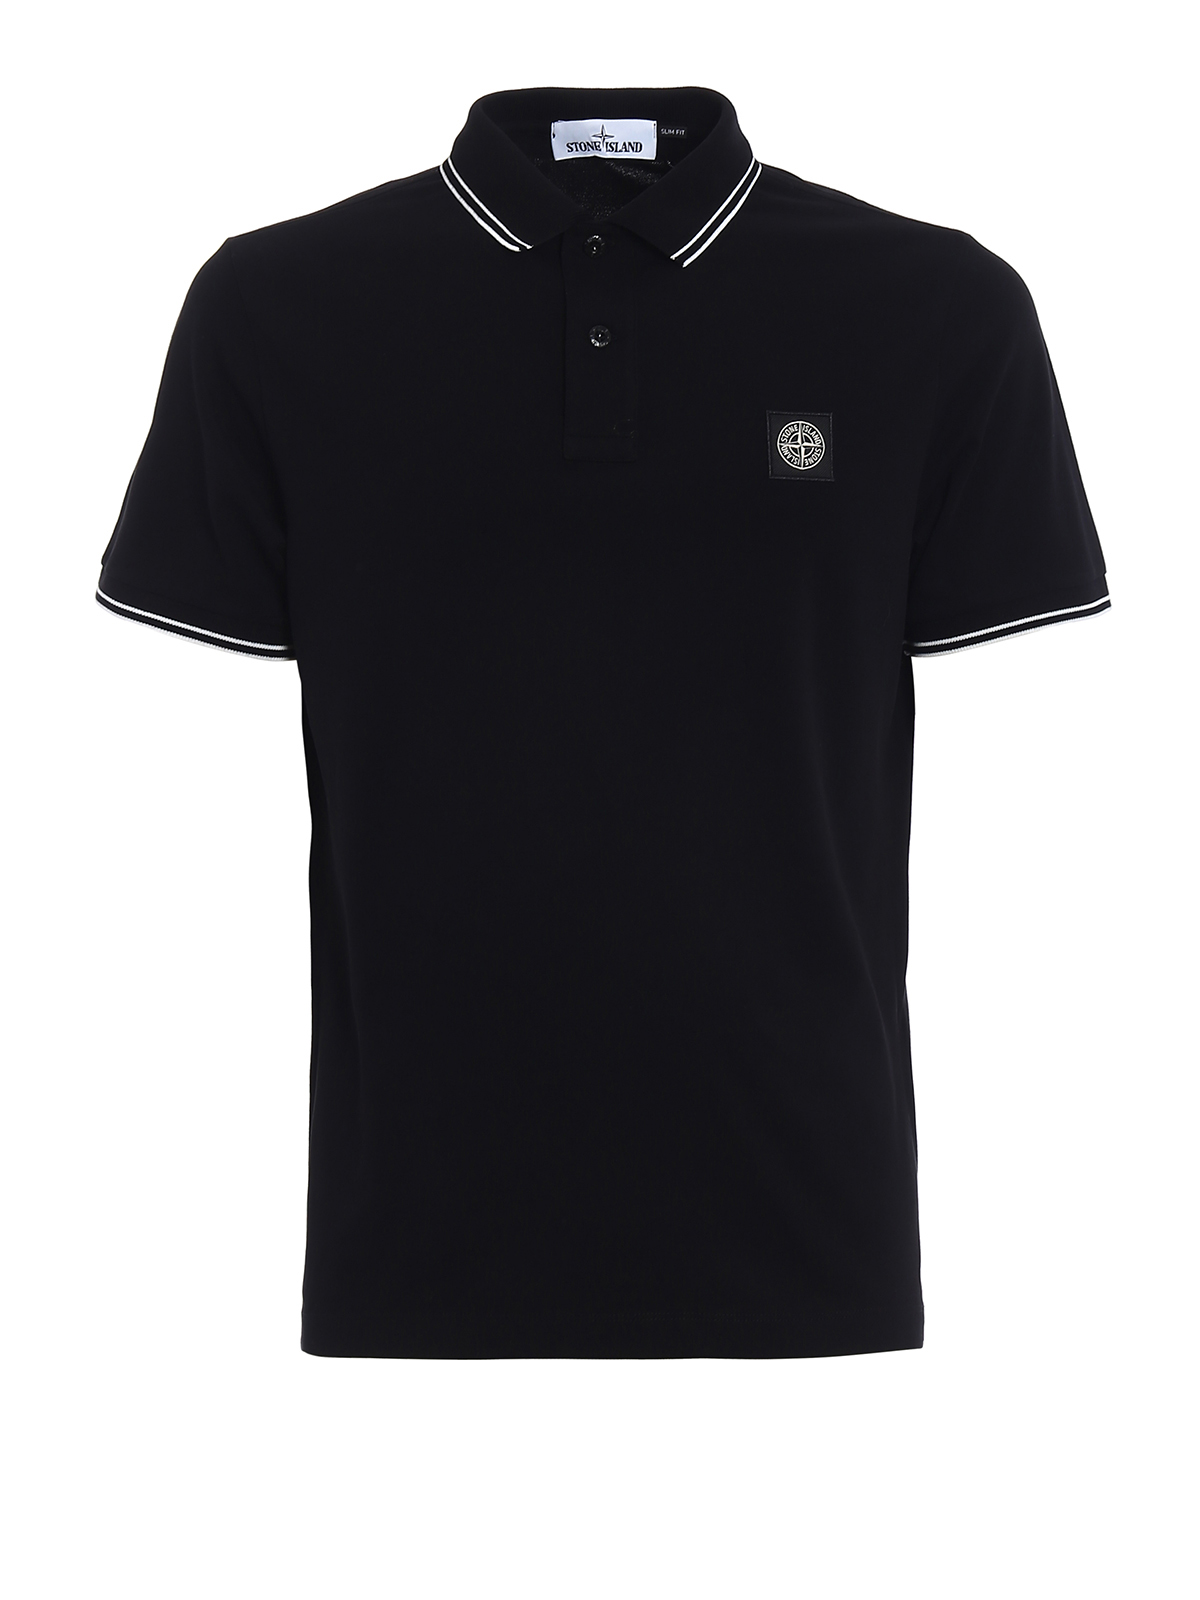 Black slim fit polo shirt by stone island polo shirts for Black fitted polo shirt